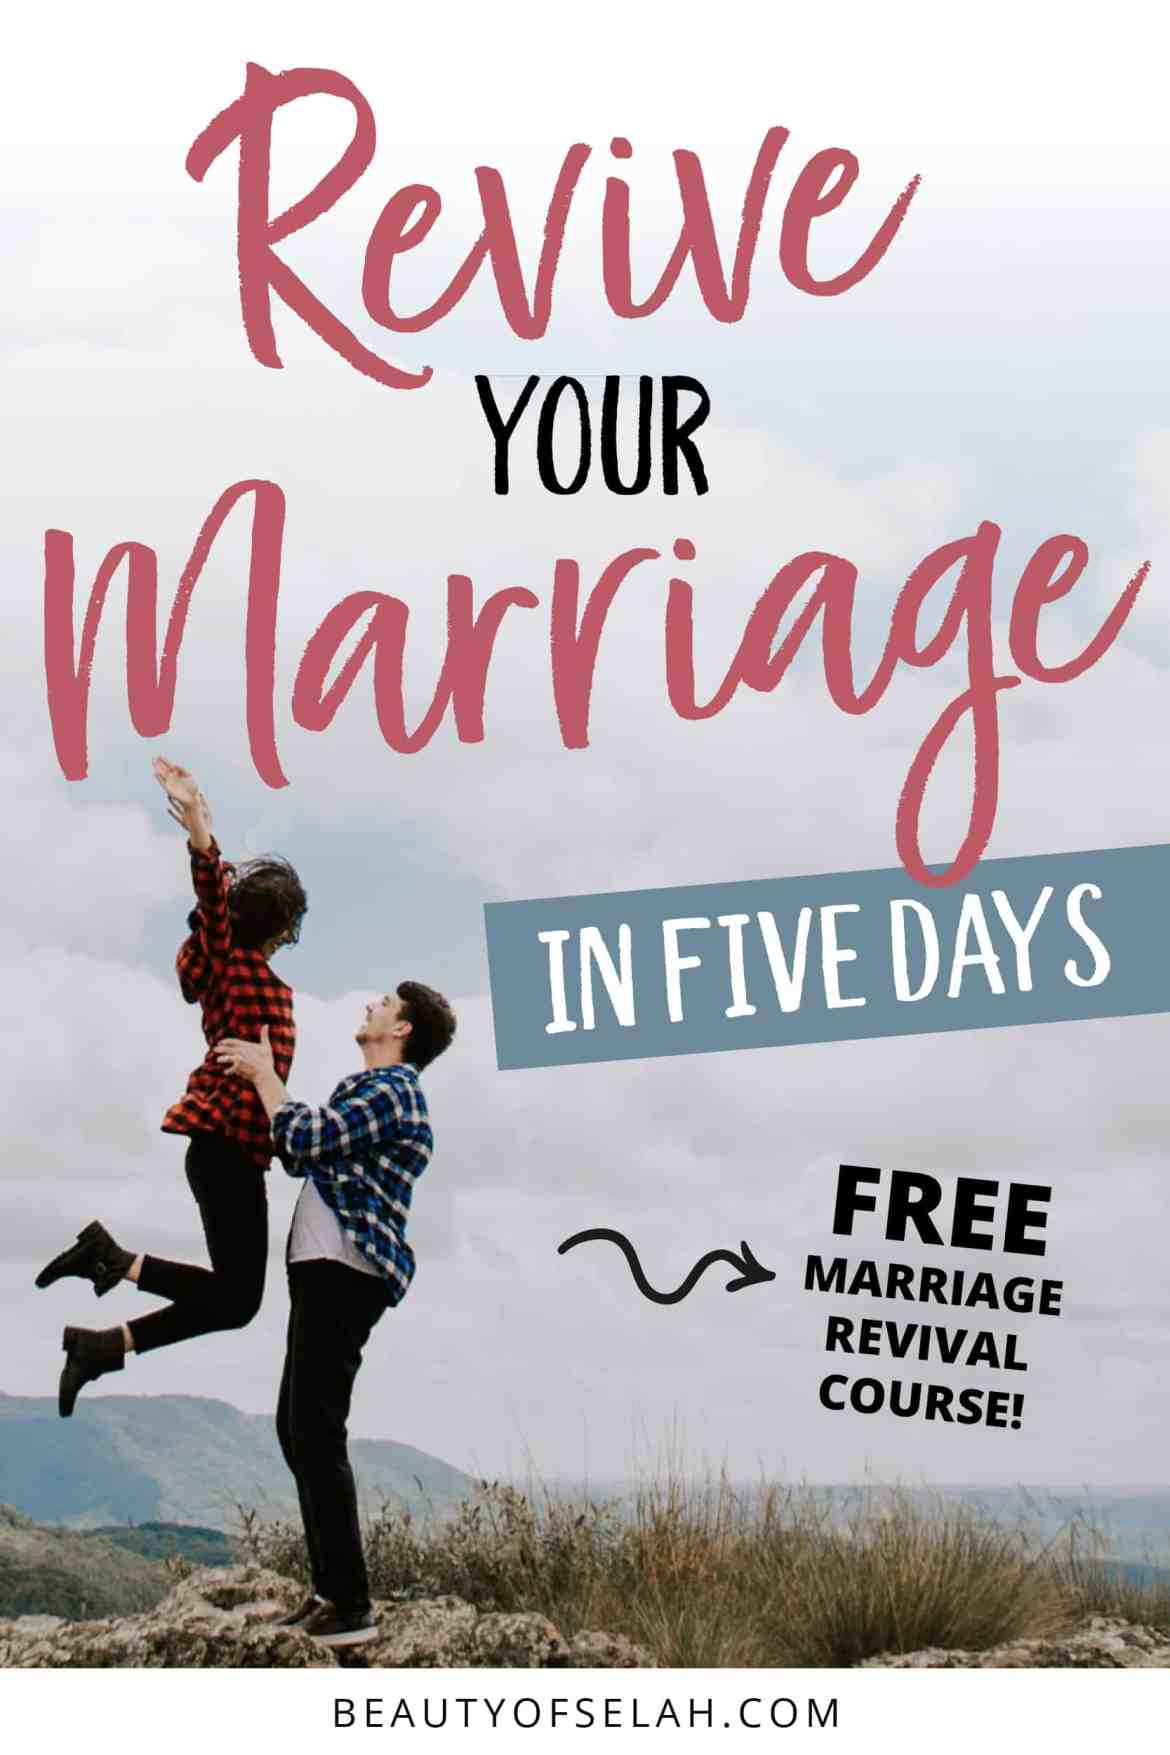 Revive your marriage in 5 days